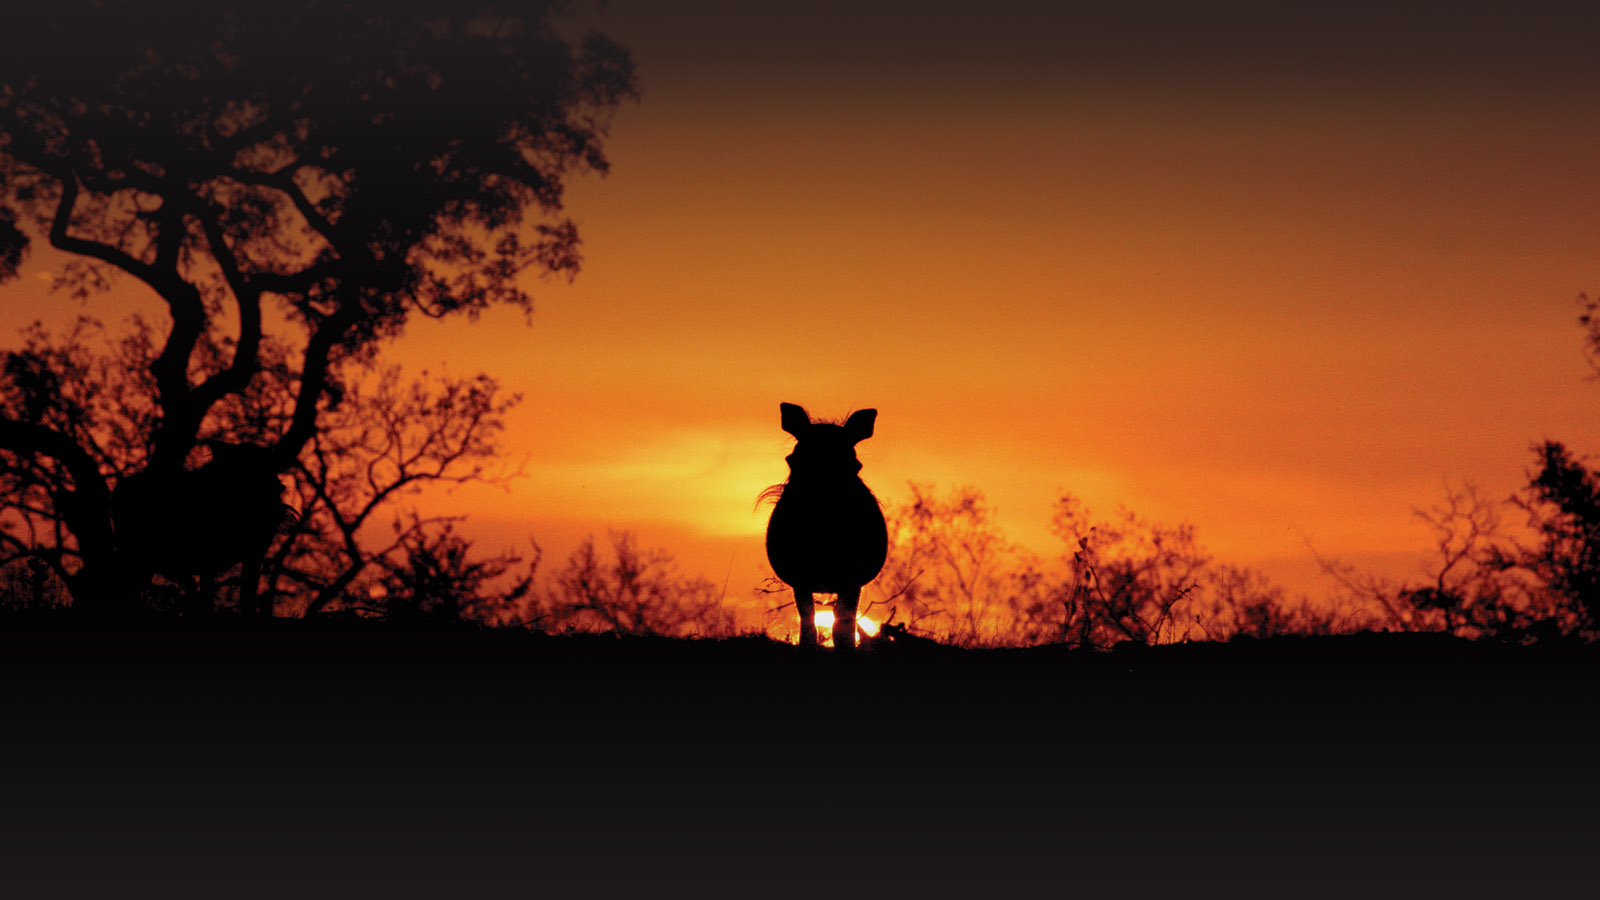 londolozi-greater-kruger-lodges-zambia-in-style-south-africa-londolozi-reserve-luxurious-wildlife-haven-sunset-warthog